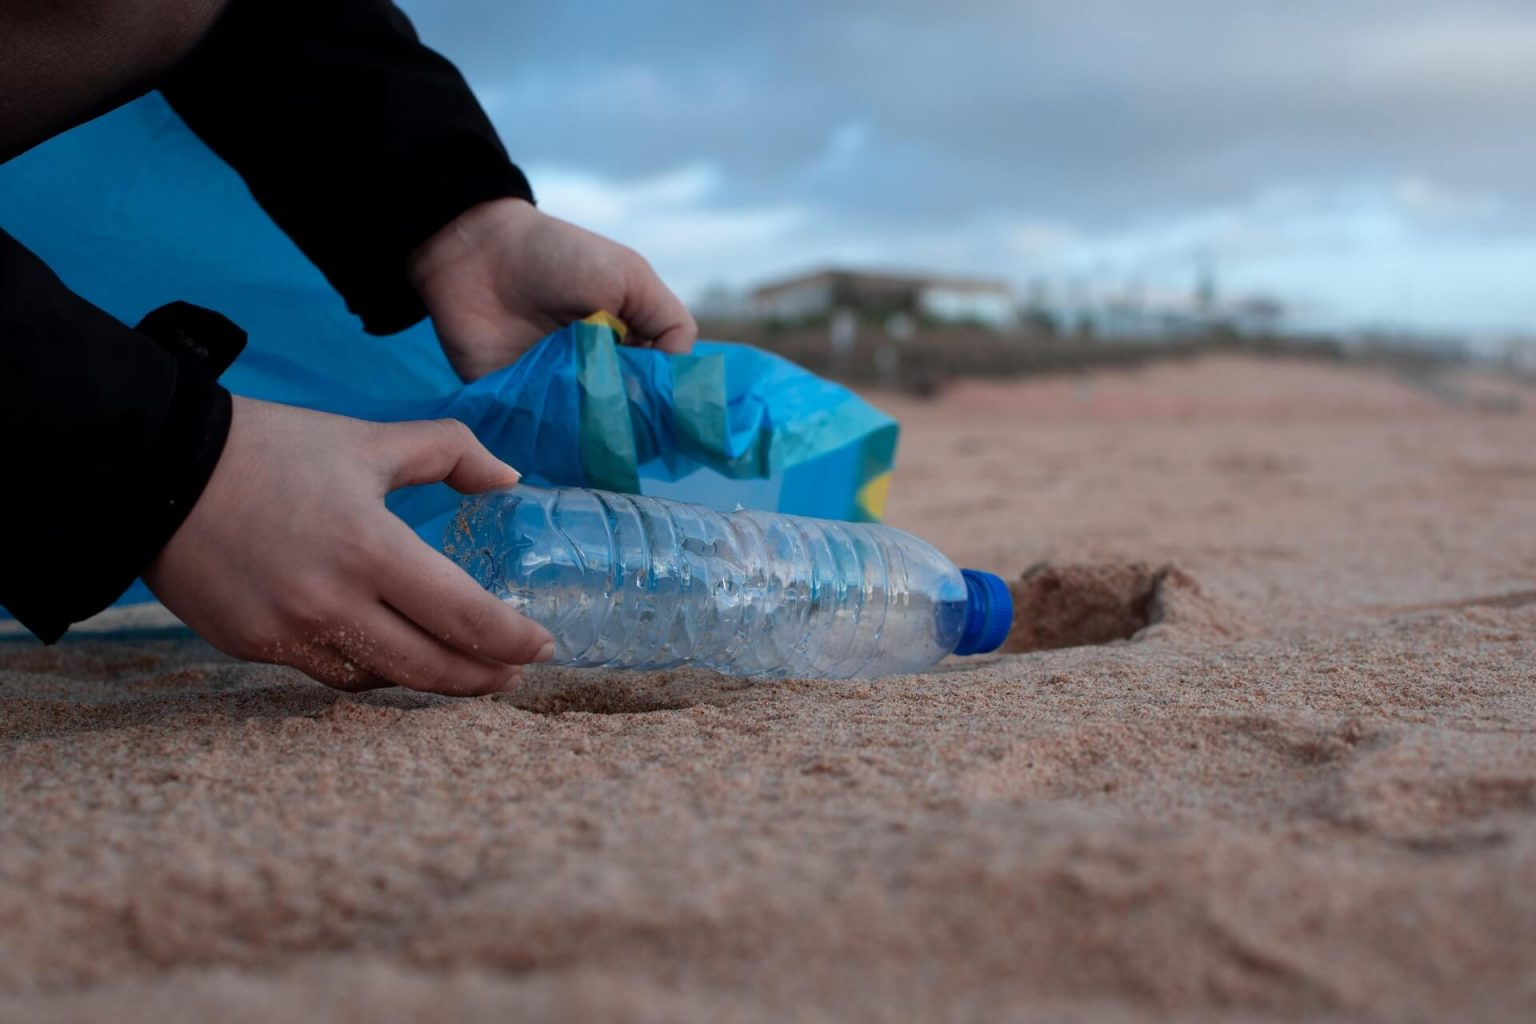 Waste management is key for any eco-friendly travel